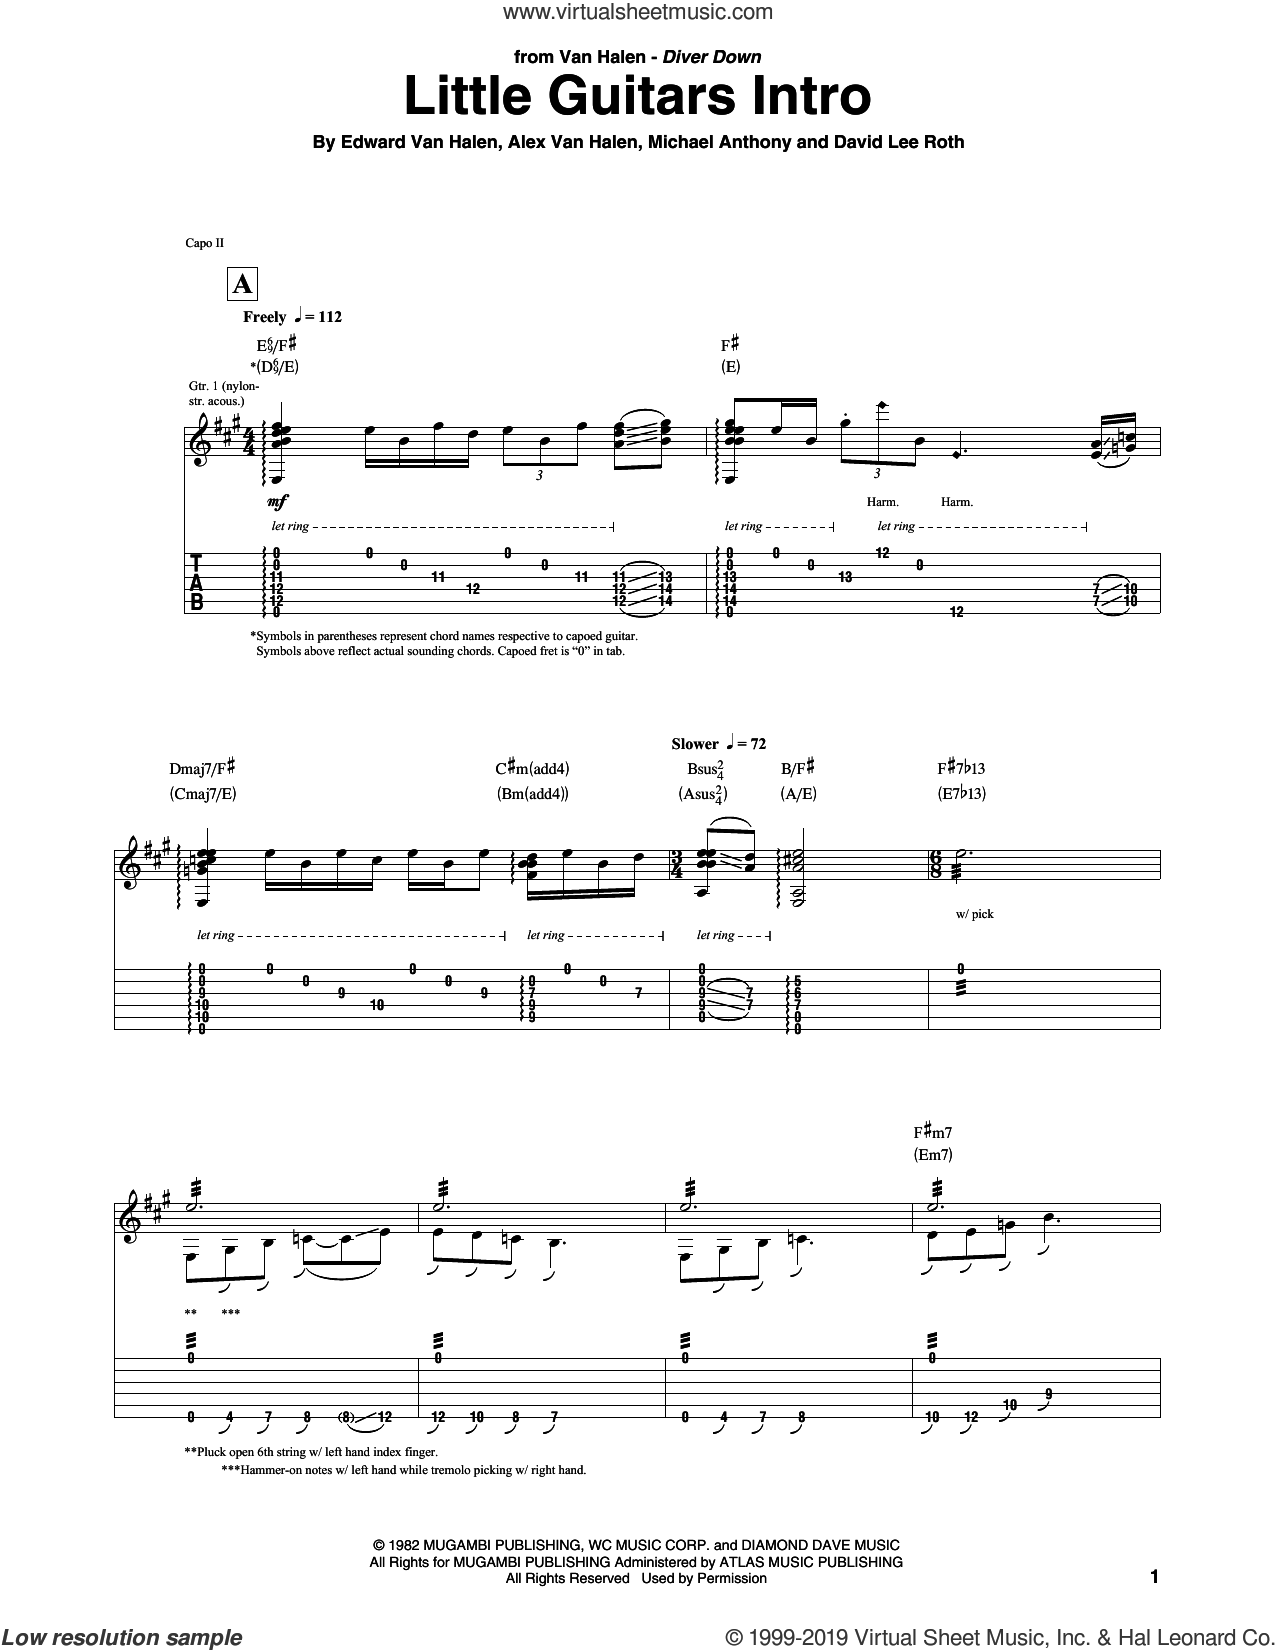 Little Guitars Intro sheet music for guitar (tablature) by Edward Van Halen, Alex Van Halen, David Lee Roth and Michael Anthony, intermediate skill level